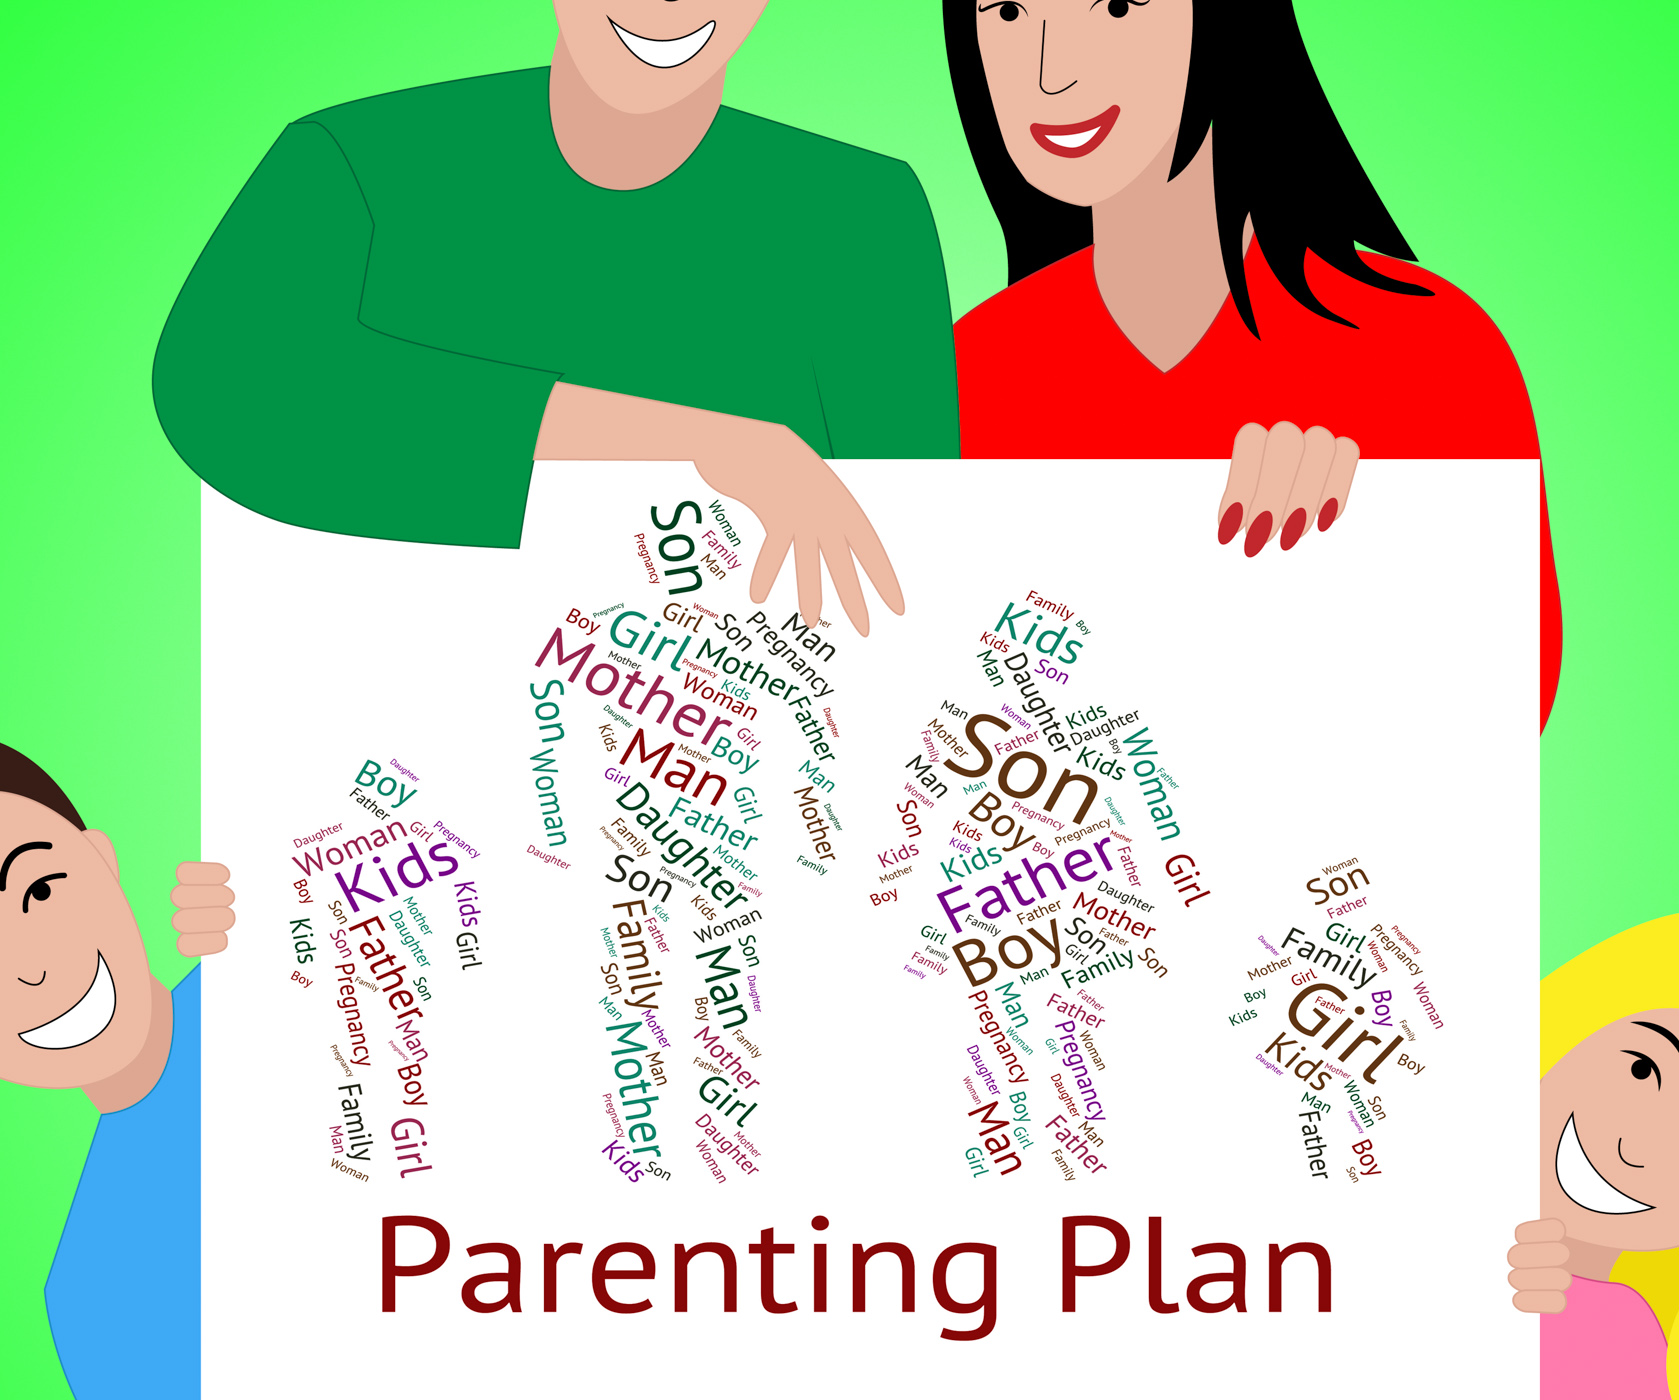 Parenting Plan Represents Mother And Child And Childhood, Agenda, Proposal, Wordcloud, Word, HQ Photo